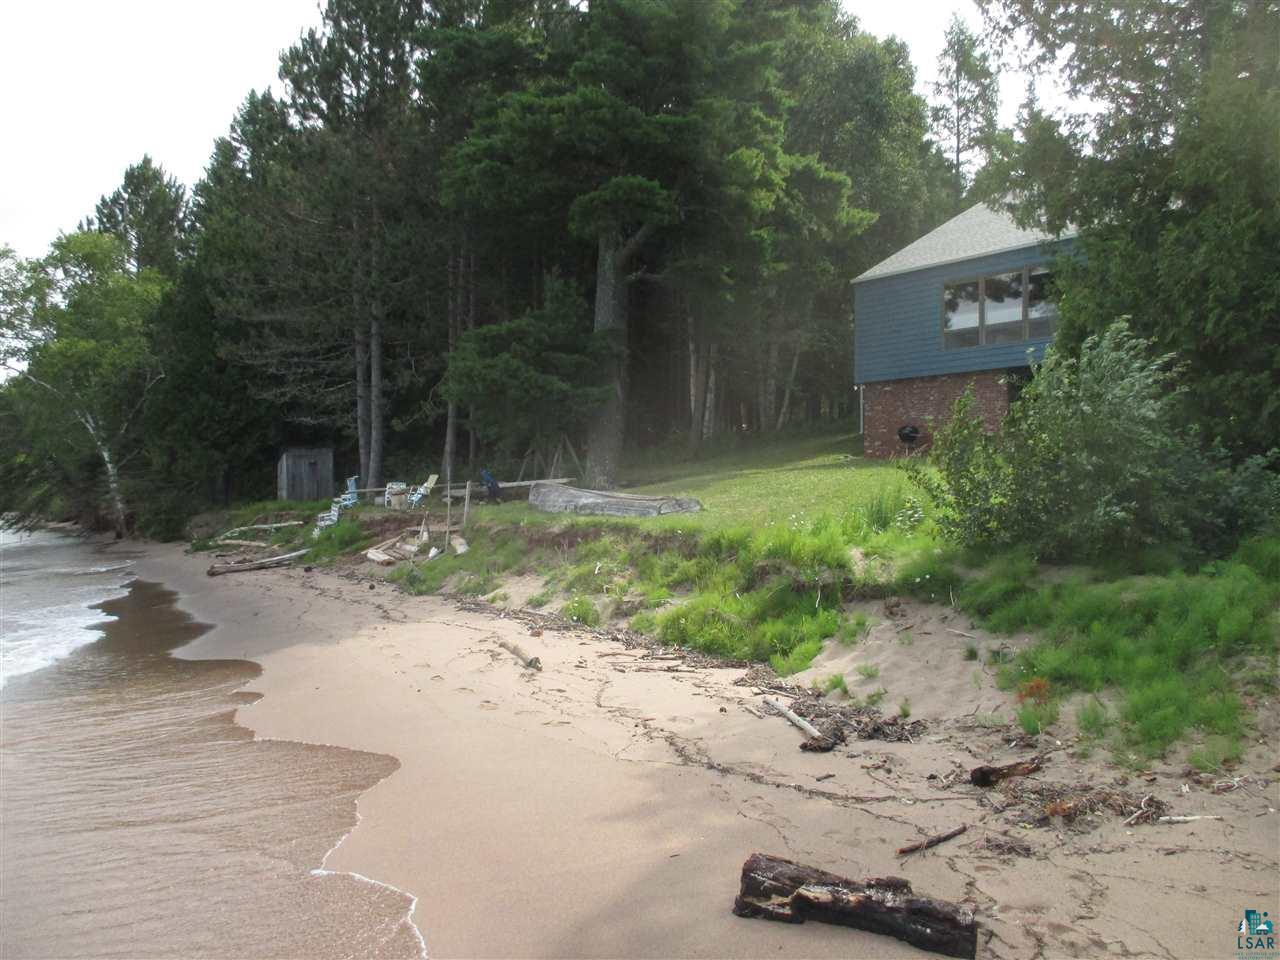 This is truly a rare opportunity to own over 2,000 feet of sand beach on Lake Superior, just 1/4-mile from the Apostle Islands National Park - Meyers Beach headquarters. You can see the famous Sea/Ice Caves, plus Eagle & Sand Islands & the North Shore. Listen to waves lapping along the shore just steps from the solidly-built home. This is a nature-lover's paradise! Hike the beach, enjoy kayaking, paddle-boarding, fishing, & sail from the Marina at nearby Cornucopia.  Immerse yourself in the quiet beauty of ~38 acres of private mixed forest, including a beautiful White Pine & Red Pine forest with fragrant needles & a soft forest floor. Enjoy birding among the cedars, aspen, maple, birch & spruce, star-gazing, Northern Lights, gorgeous sunsets & more. The home has a cabin-like feel with some pine paneling & kitchen cabinets, and a Great Room with a wall of windows to the Lake. The 3-Season Porch will become your favorite room! Plenty of bedrooms plus a full walk-out basement. Keep your small watercraft & beach toys in the Boathouse. You can use the outbuilding for storage or easily convert it to a garage. With this privacy, shoreline & ideal location near Cornucopia & Bayfield, you can be refreshed & find your peace all four seasons!